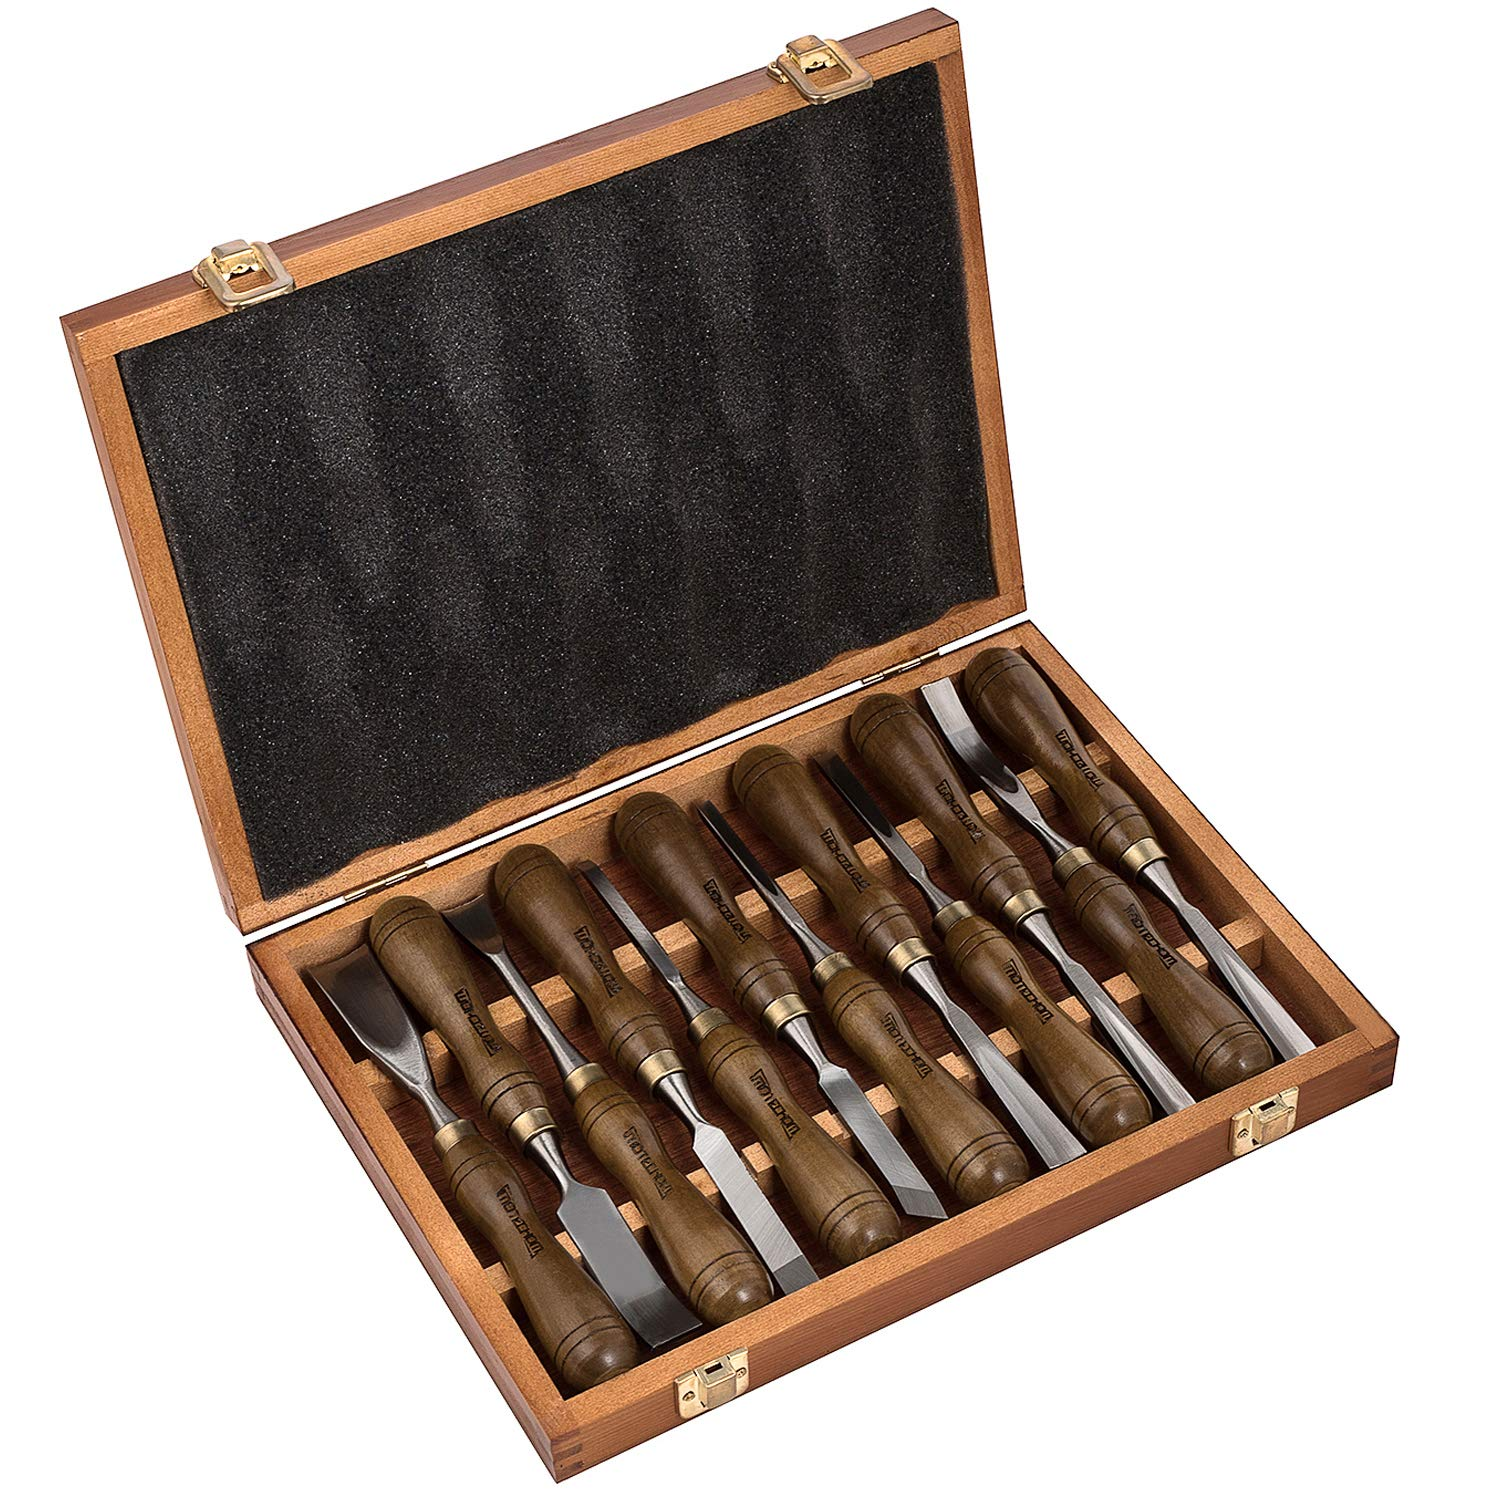 IMOTECHOM 12-Pieces Woodworking Wood Carving Tools Chisel Set with Walnut Handle, Wooden Storage Case by IMOTECHOM